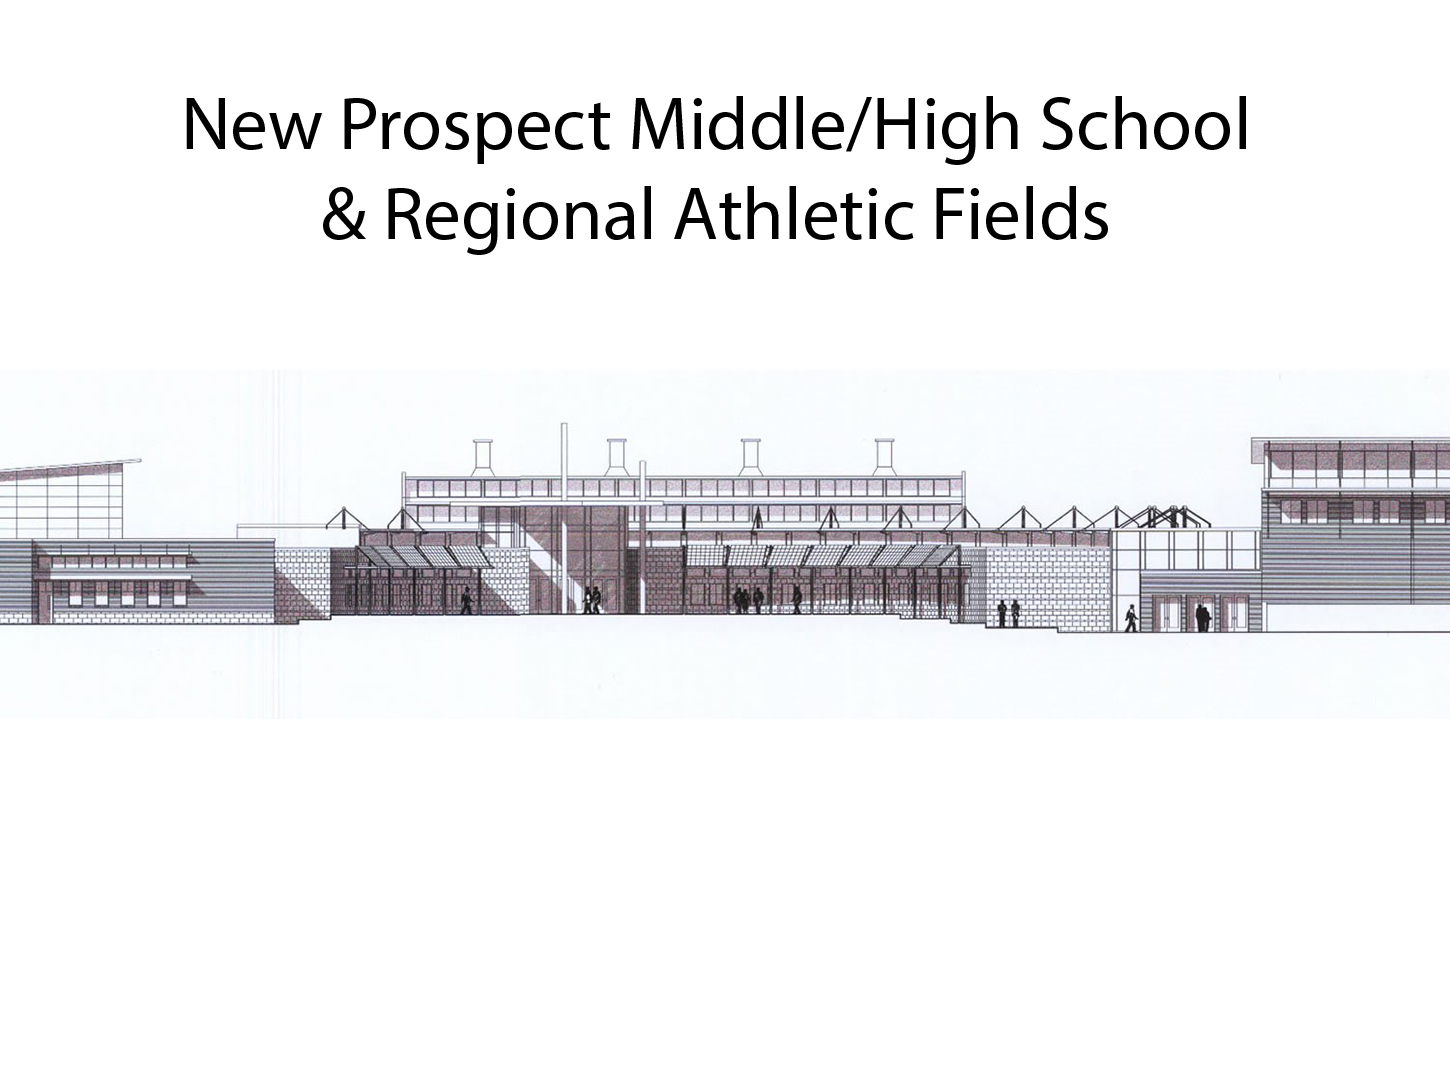 32_20new_20prospect_20middle-high_20school_20fort_20collins_20colorado